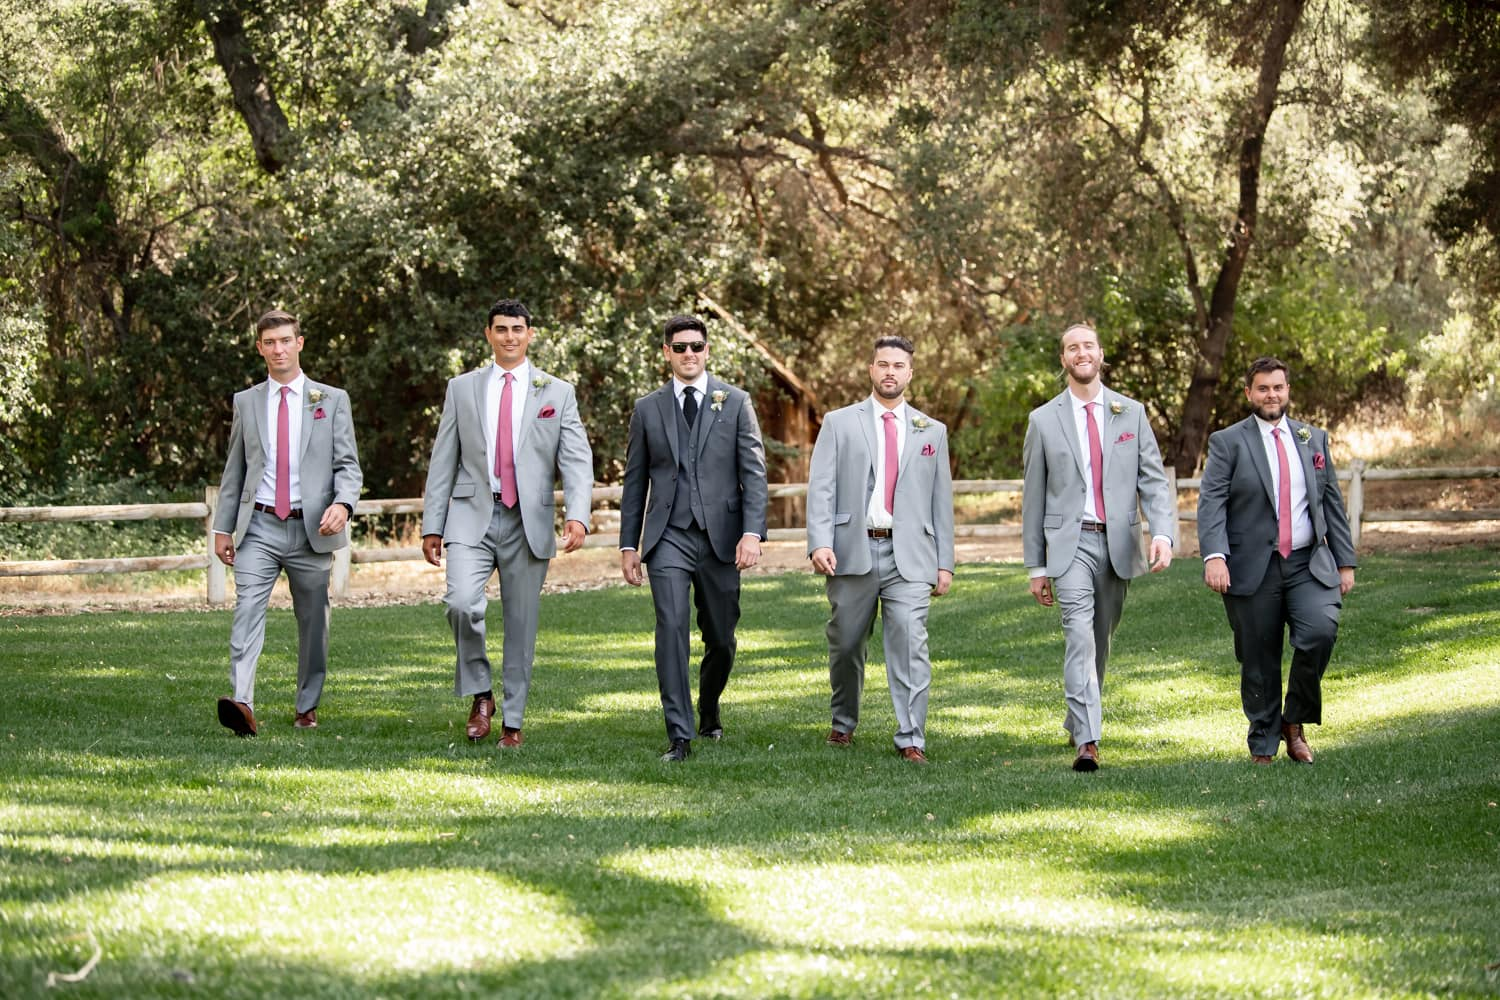 Groomsmen photos at The Stone House ceremony site in Temecula, CA